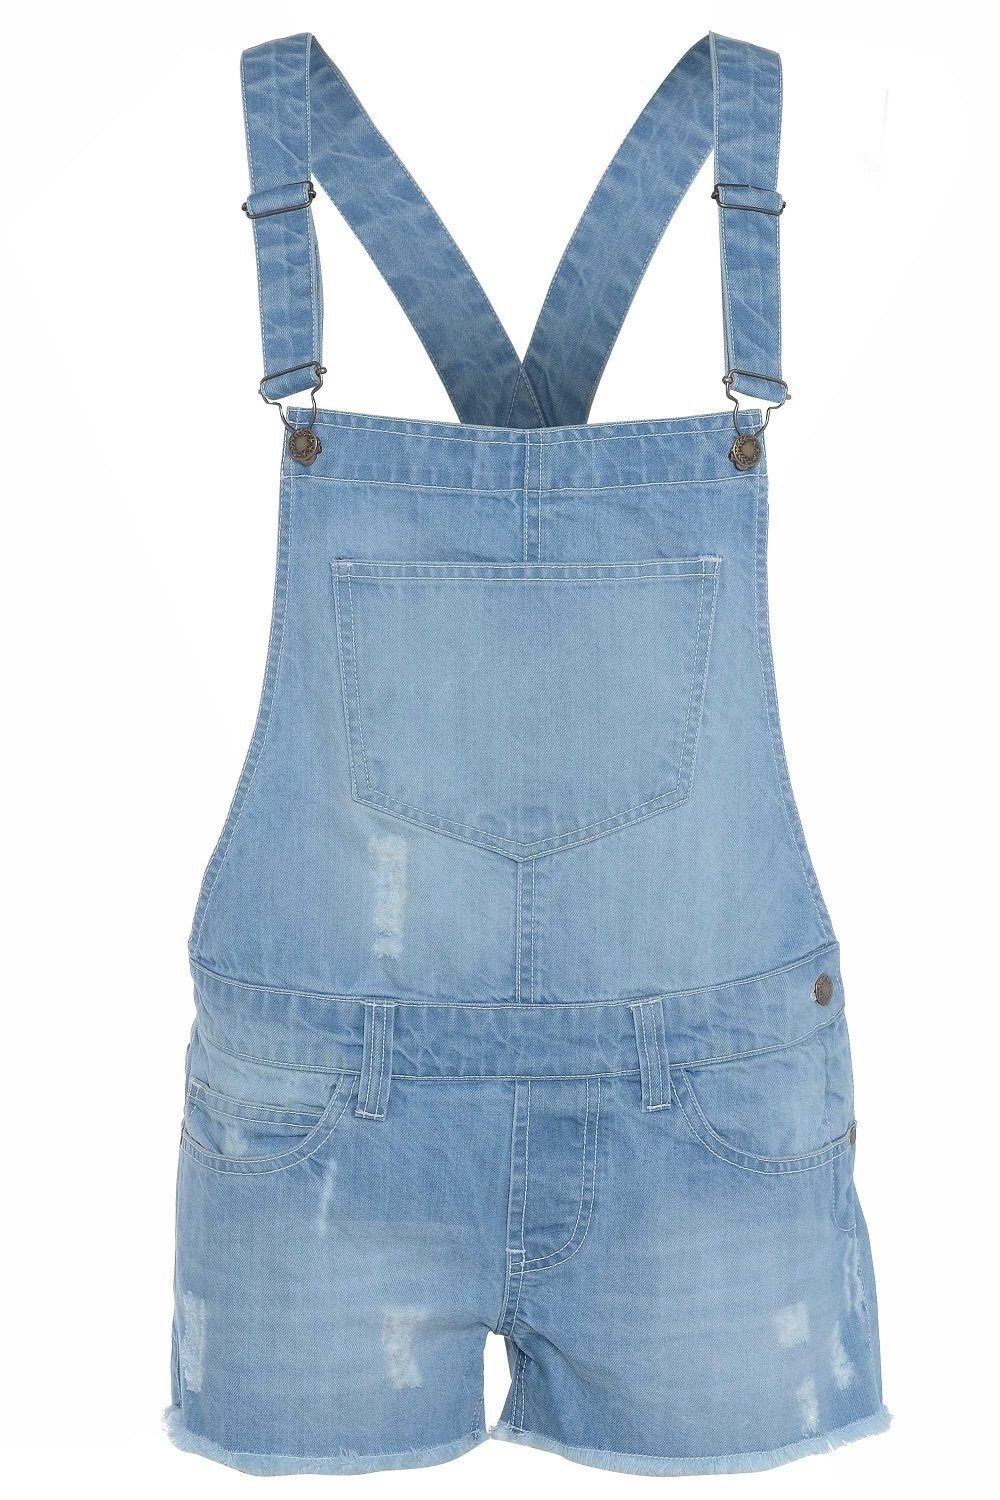 New in Stylish Summer Girl's Denim Dungaree Shorts Jumpsuit Ages 7-13 (13 Years, Denim)